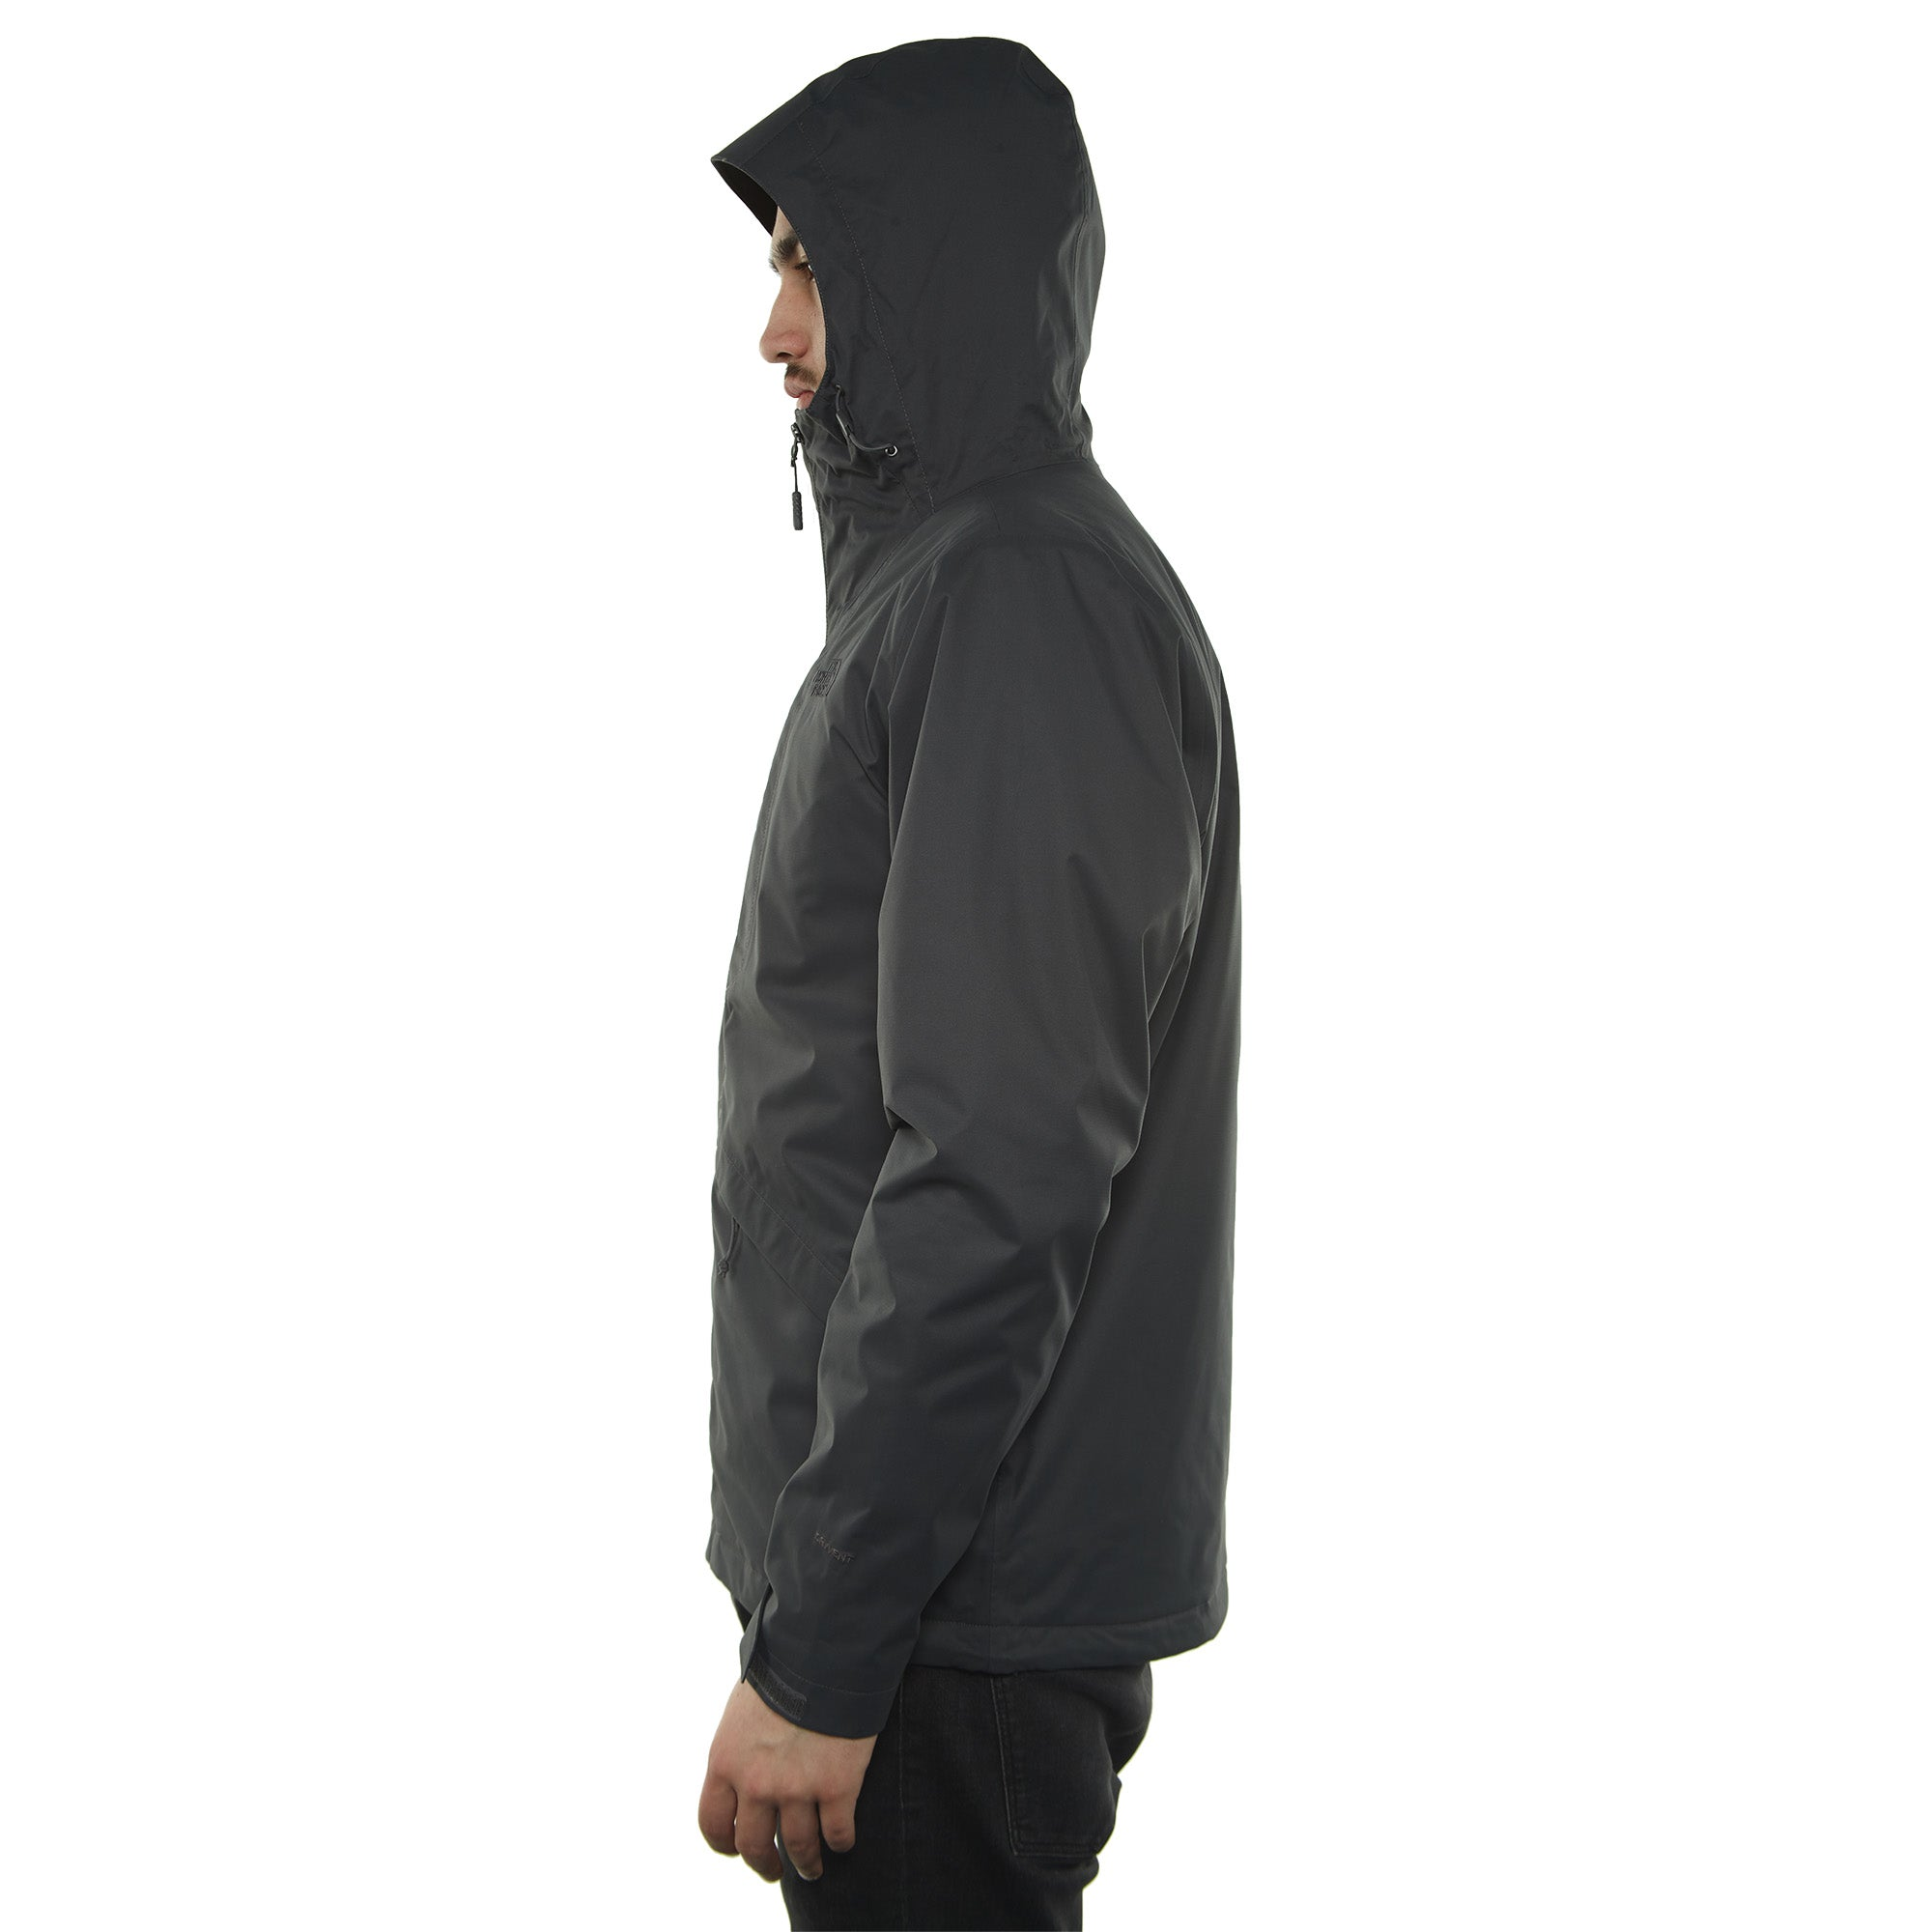 4510799f7 North Face Plumbline Triclimate Jacket Mens Style : A3erz-MN8 ...